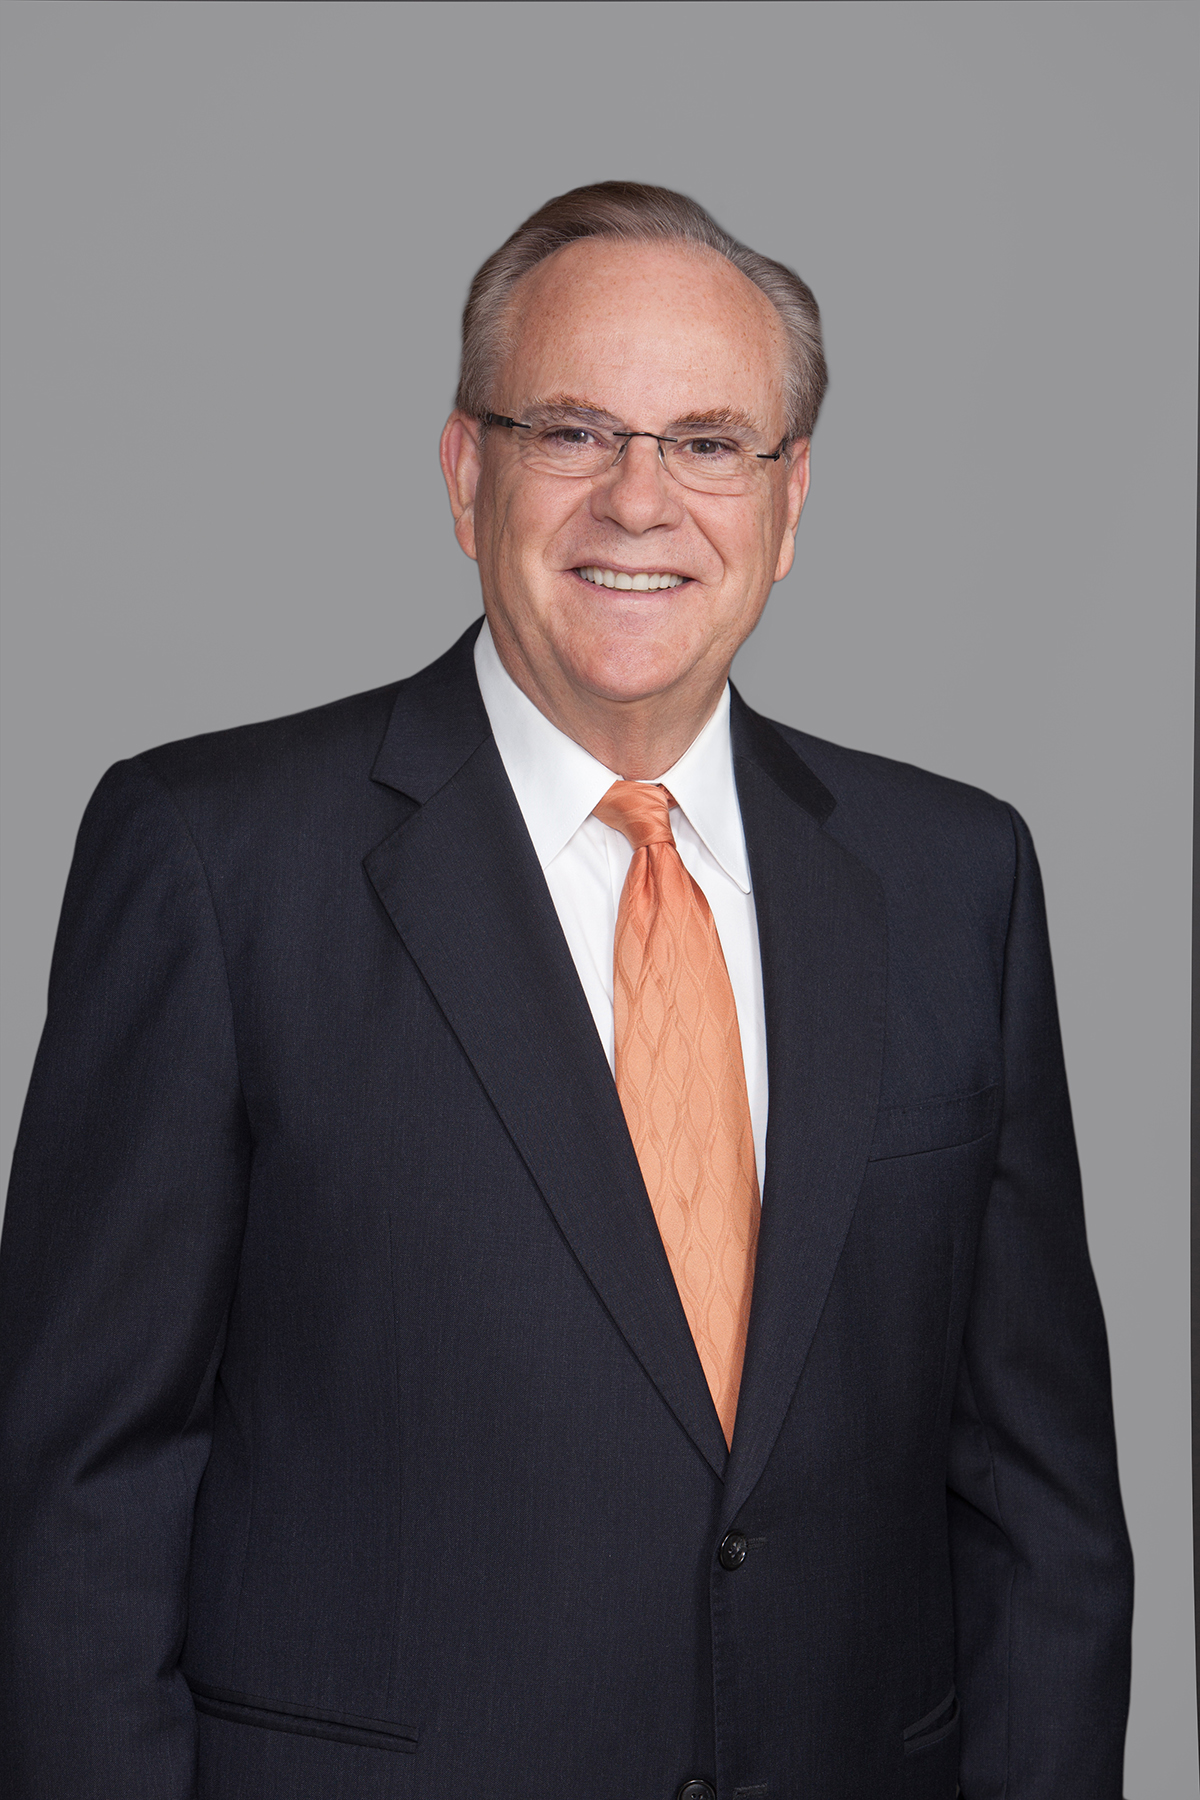 Bill Lockyer